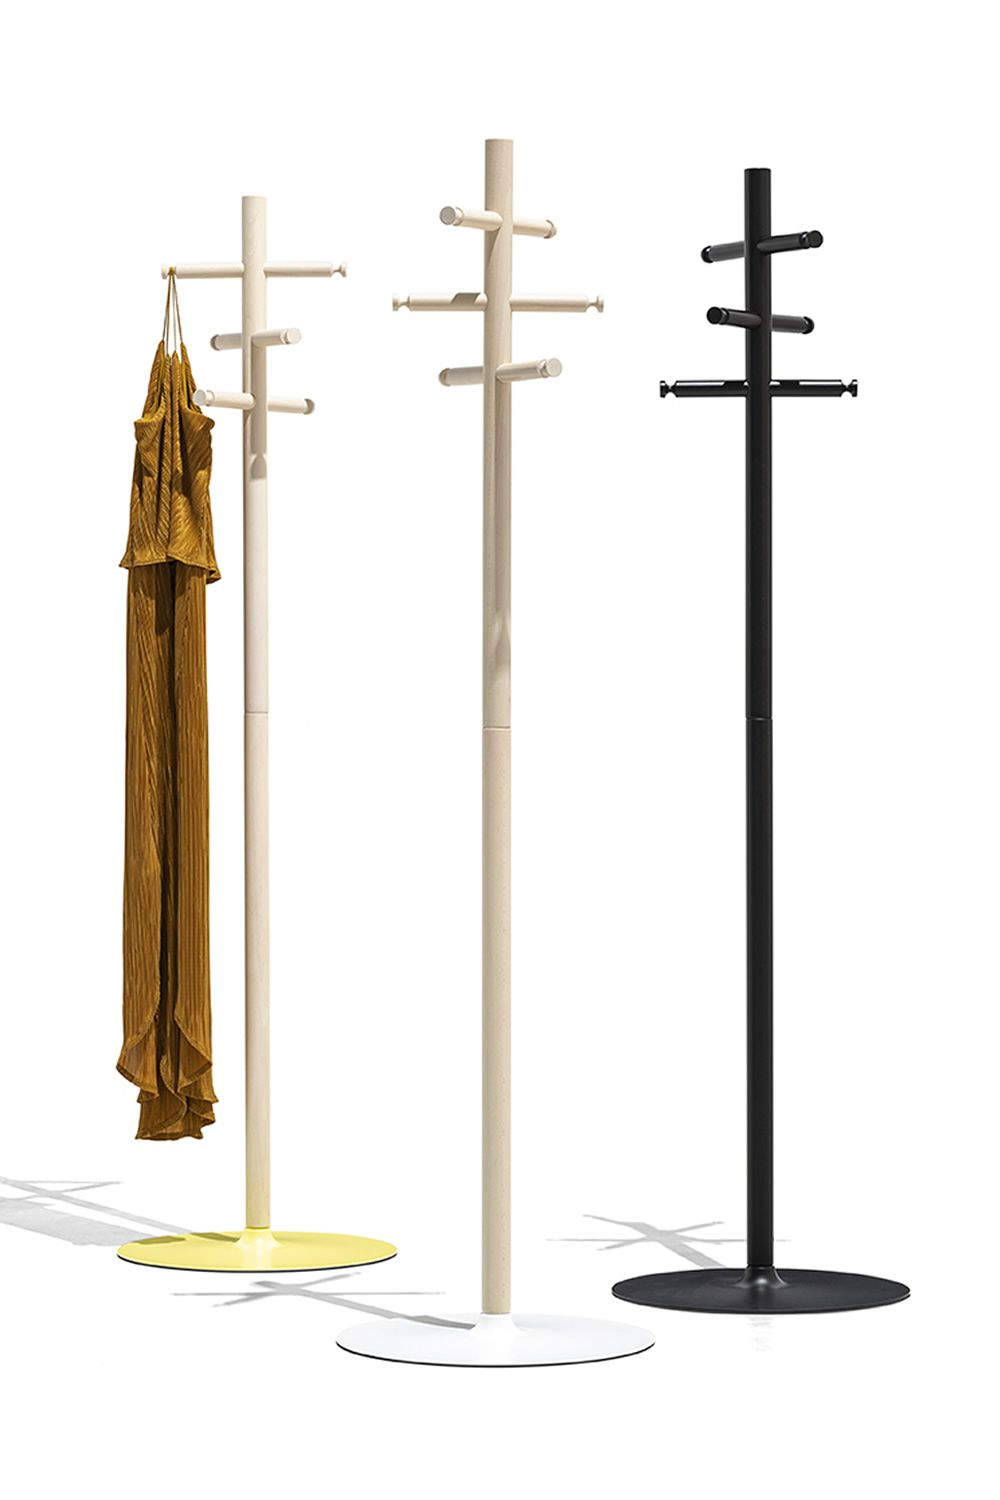 cb5212 app connubia coat rack with metal structure and wooden hooks different colours available - Suport pentru haine App CONNUBIA (CB/5212)